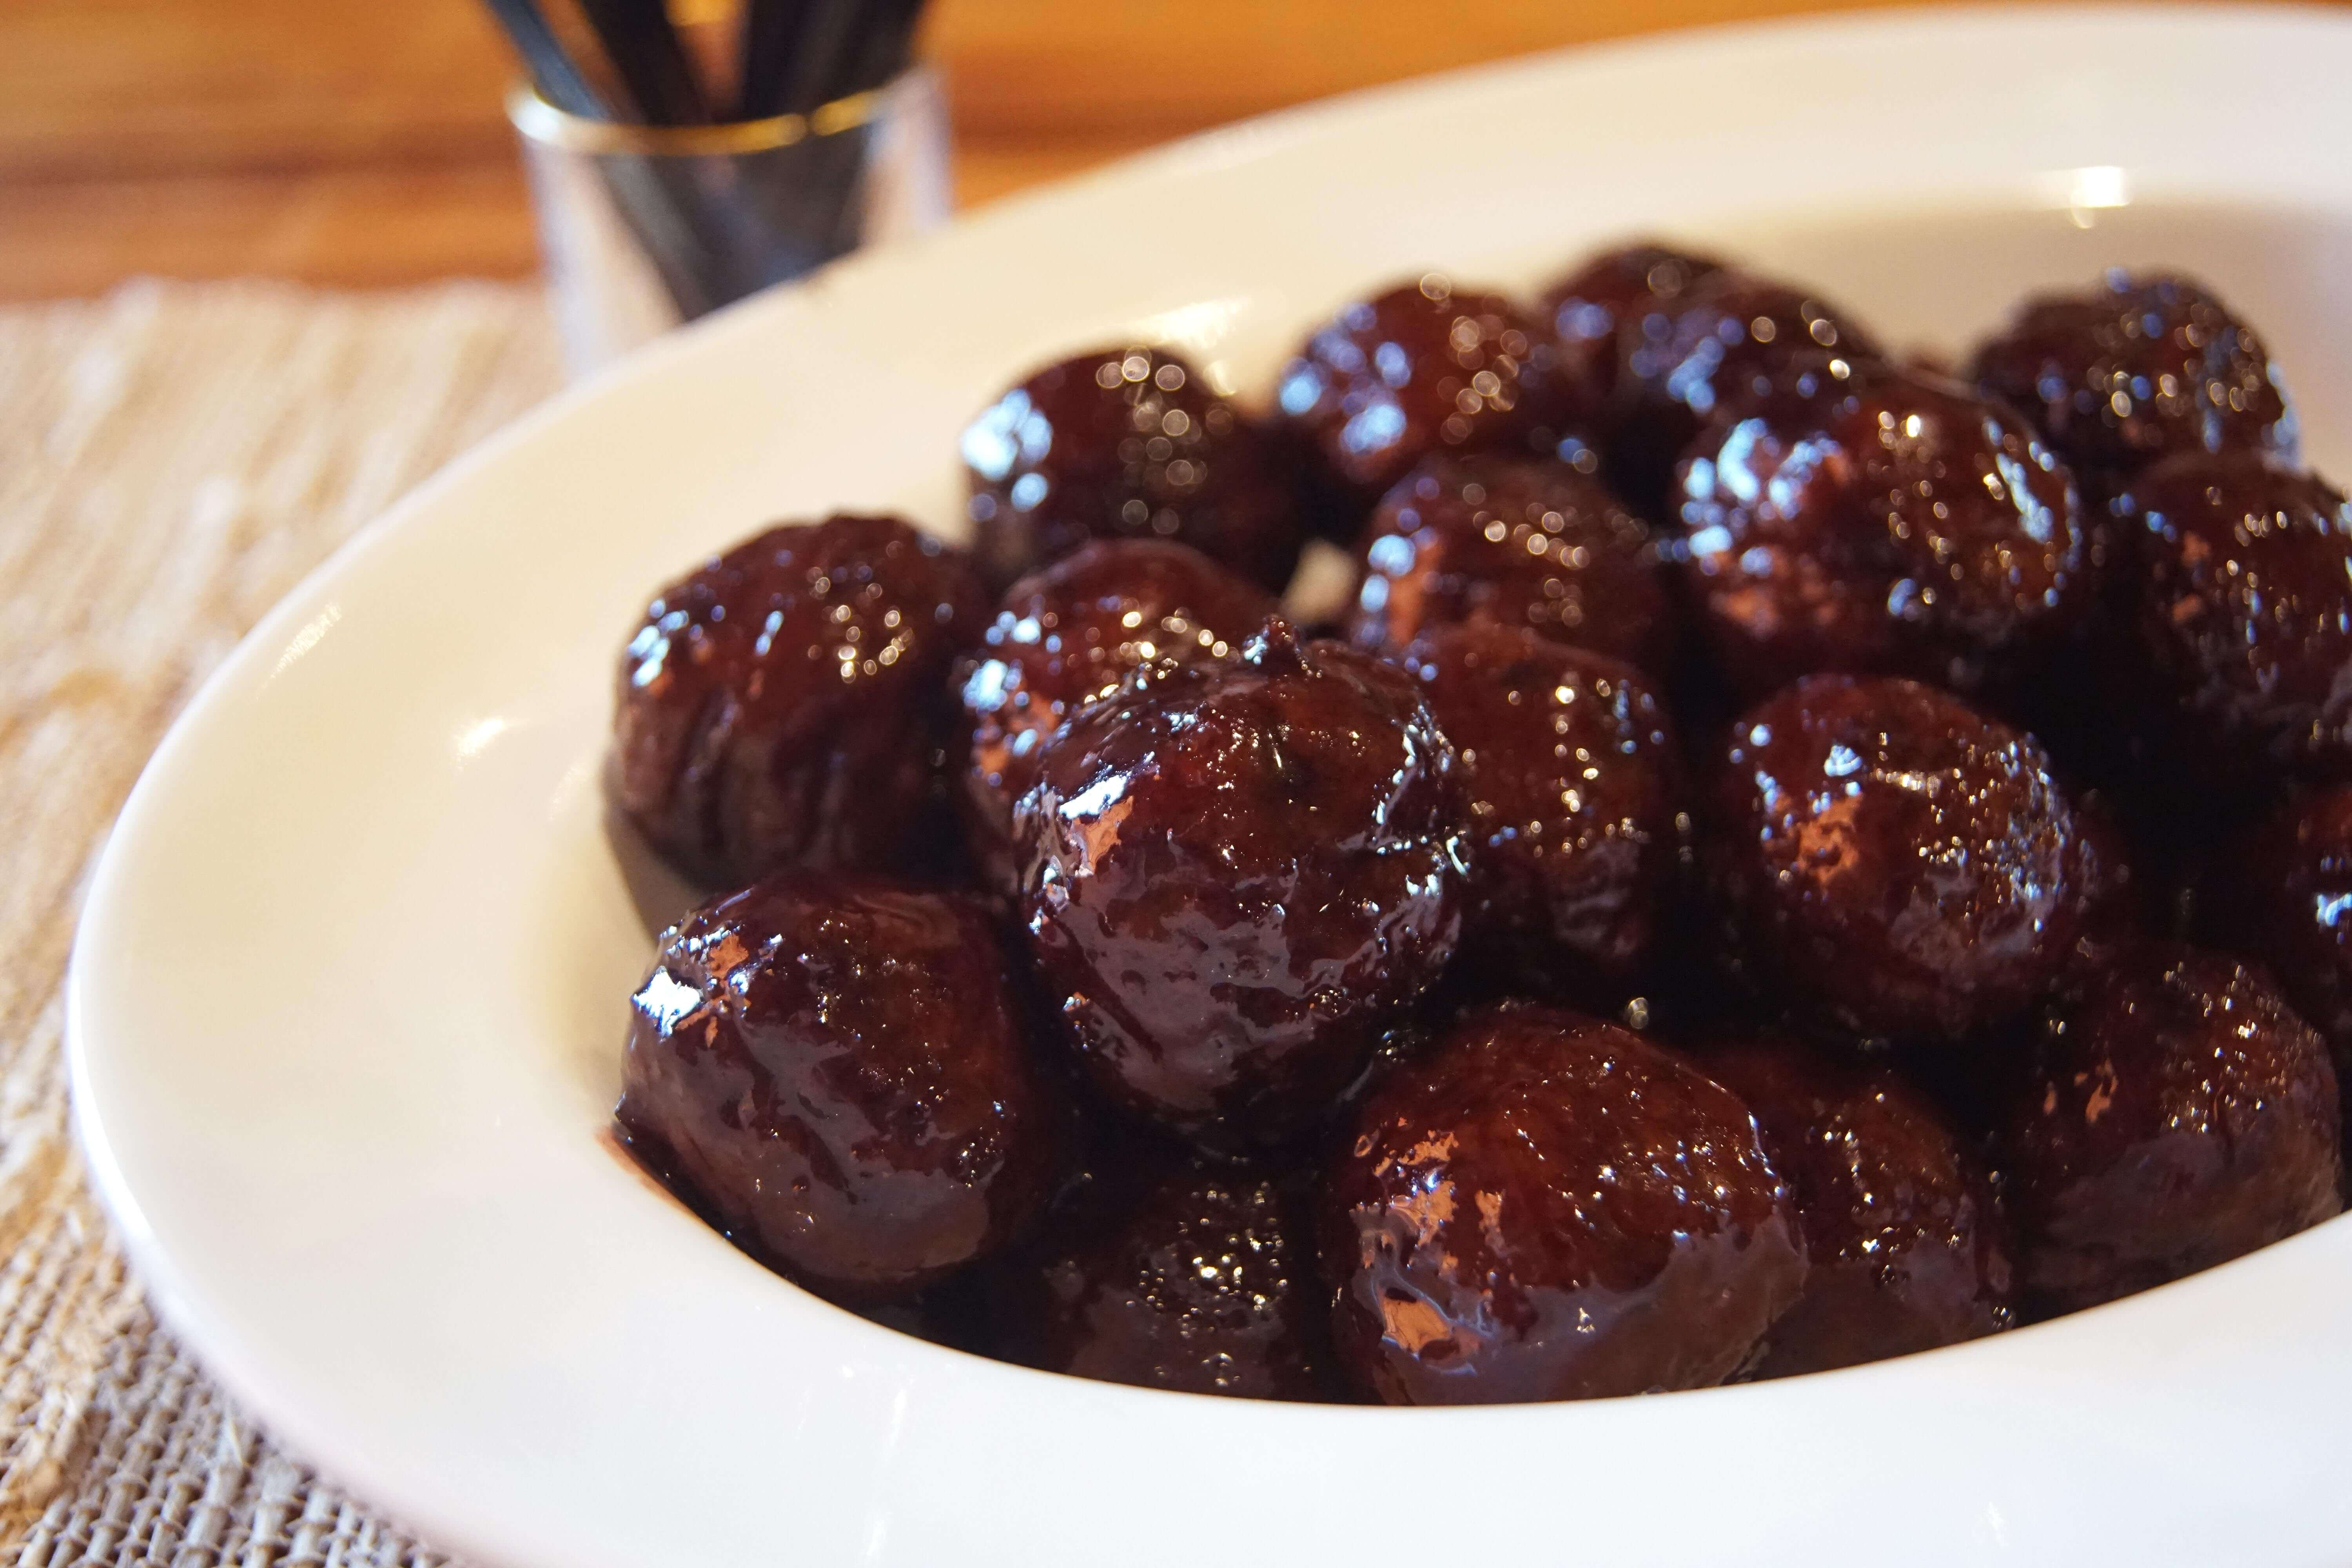 Blackberry moonshine meatballs jeptha creed a great appetizer for any event youre hosting easily scale the recipe up for larger groups or toss in a crockpot instead of cooking on a stovetop forumfinder Image collections